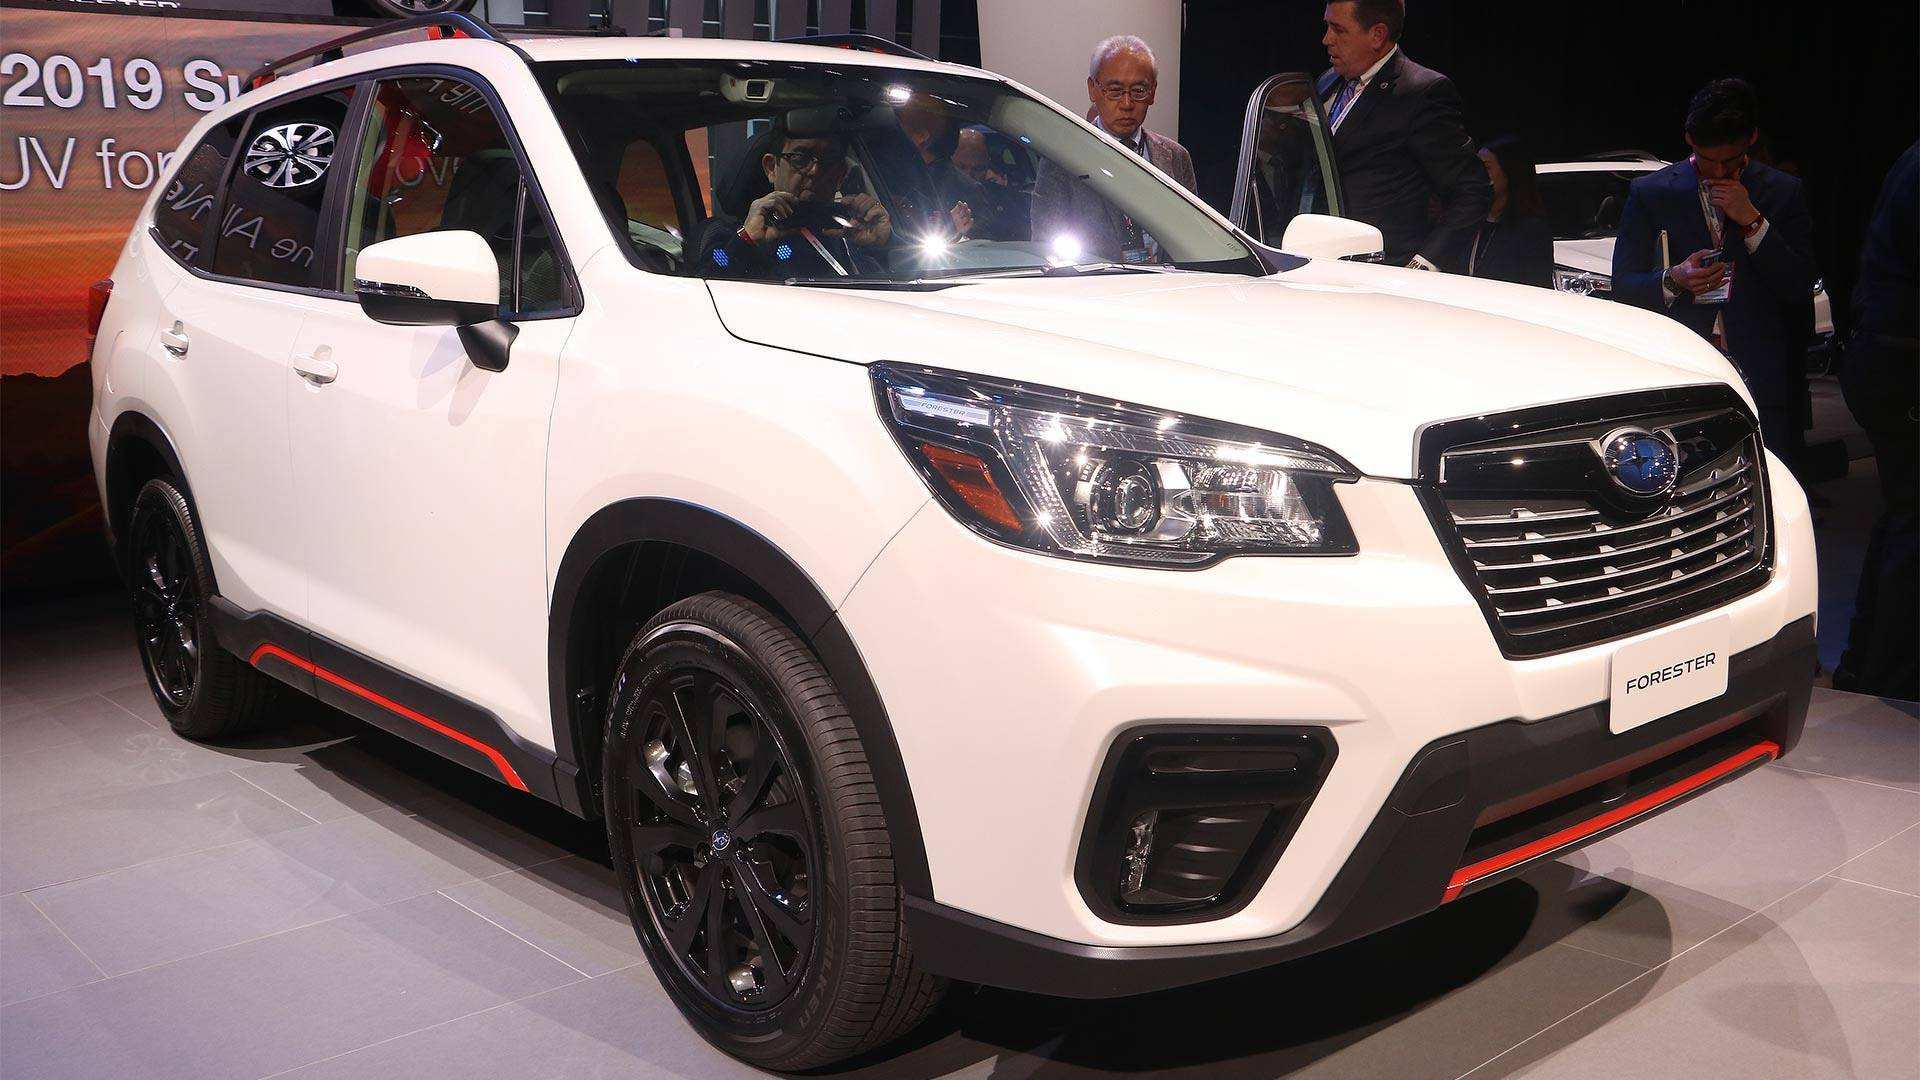 56 Gallery of 2020 Subaru Forester Towing Capacity Specs by 2020 Subaru Forester Towing Capacity